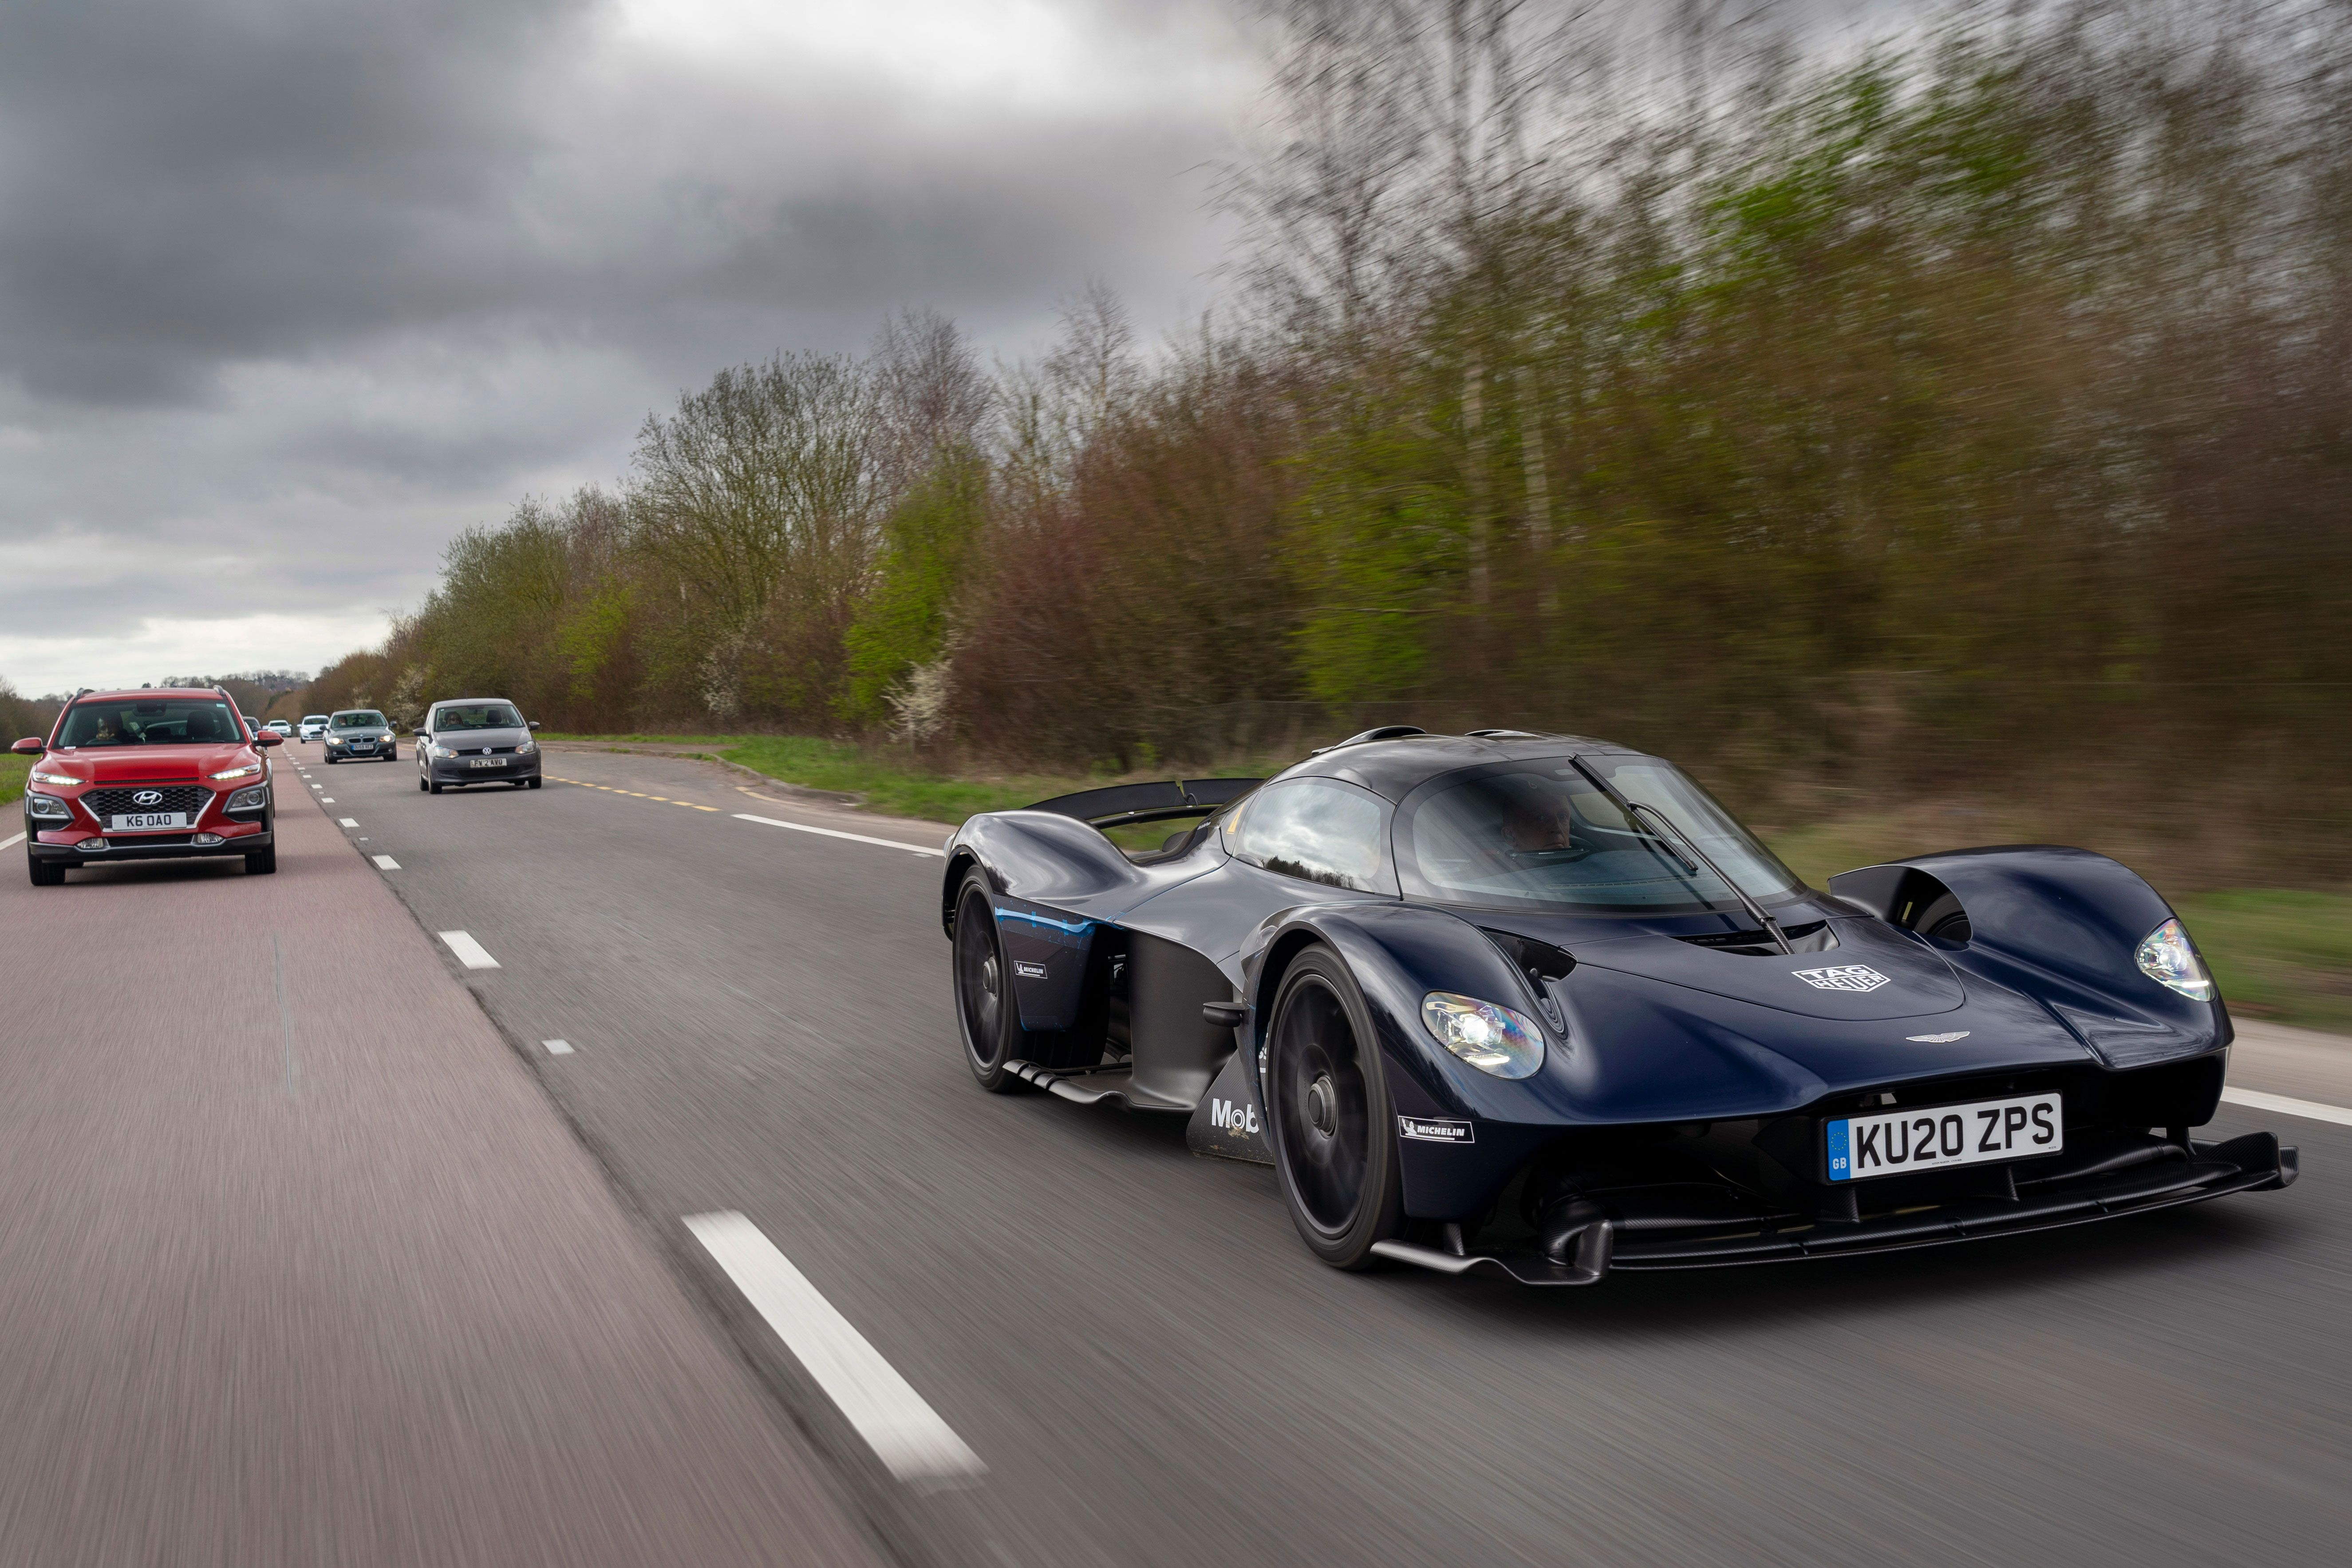 Here S The Aston Martin Valkyrie On The Road As It Was Meant To Be